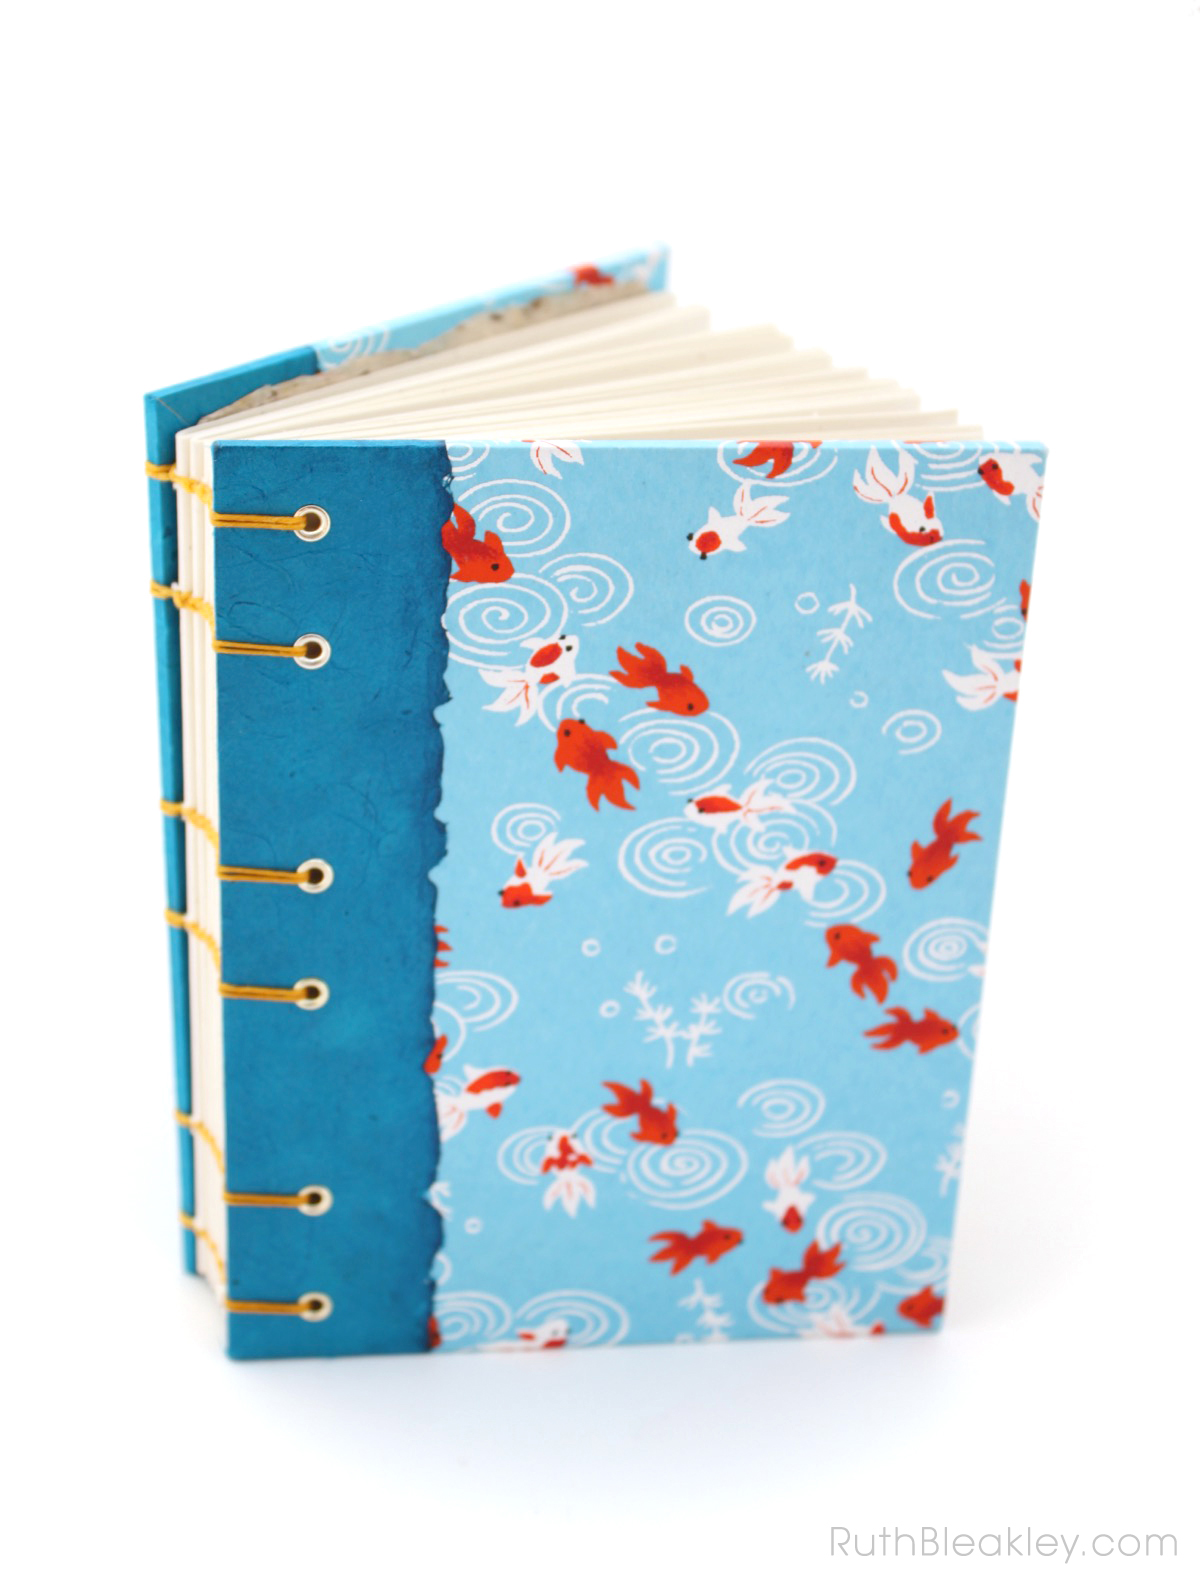 Goldfish journal handmade by Ruth Bleakley - 2